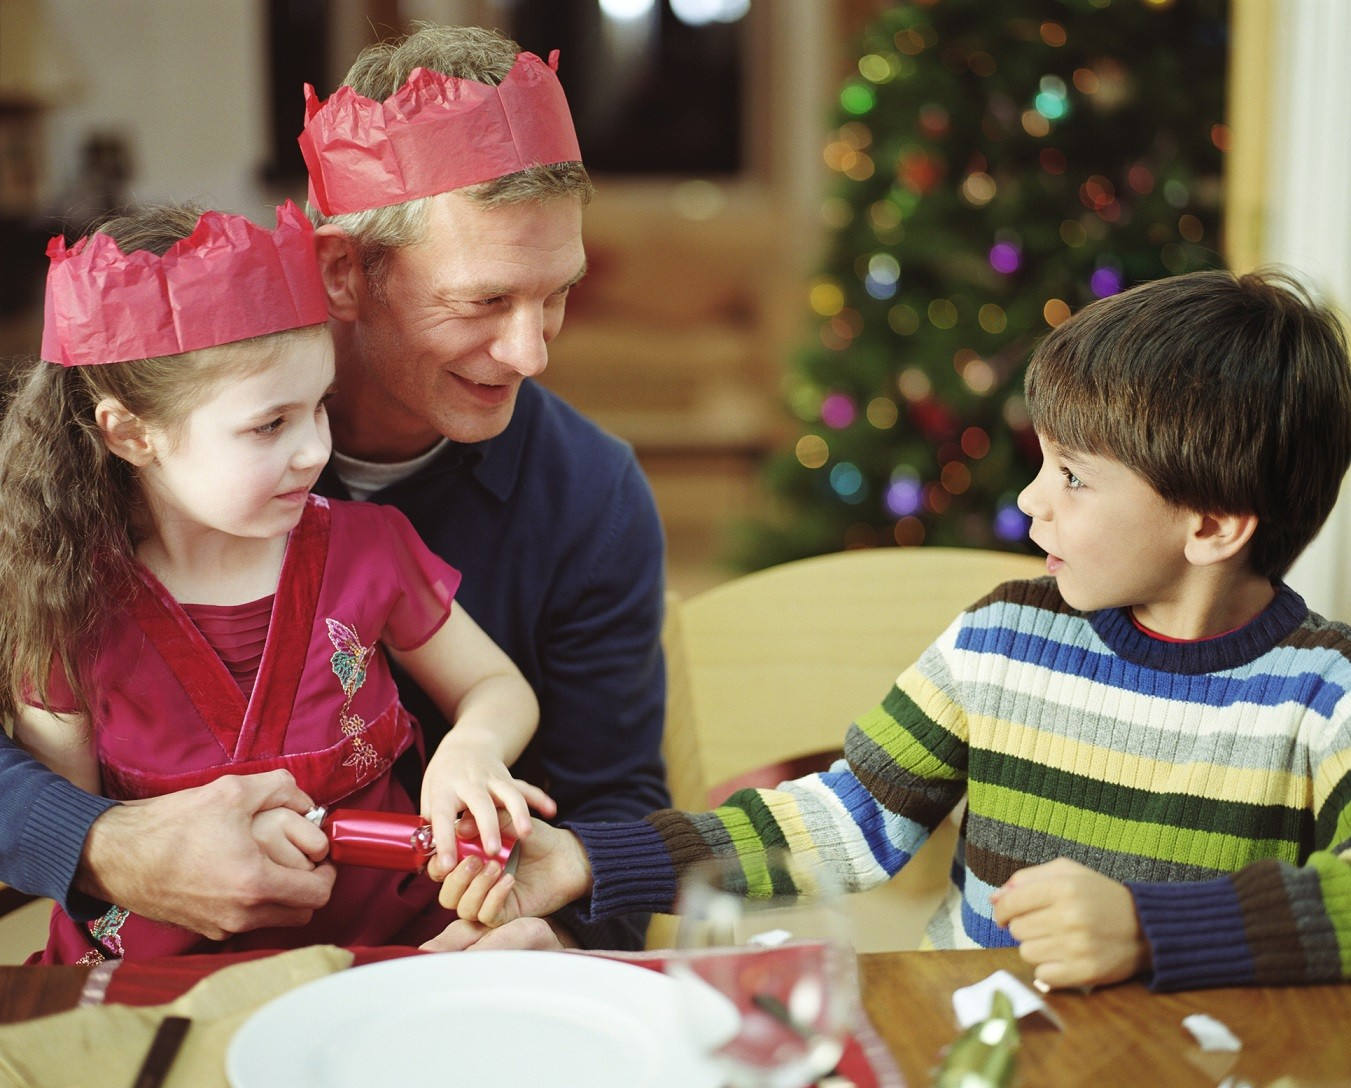 British Family at Christmas with crowns and cracker